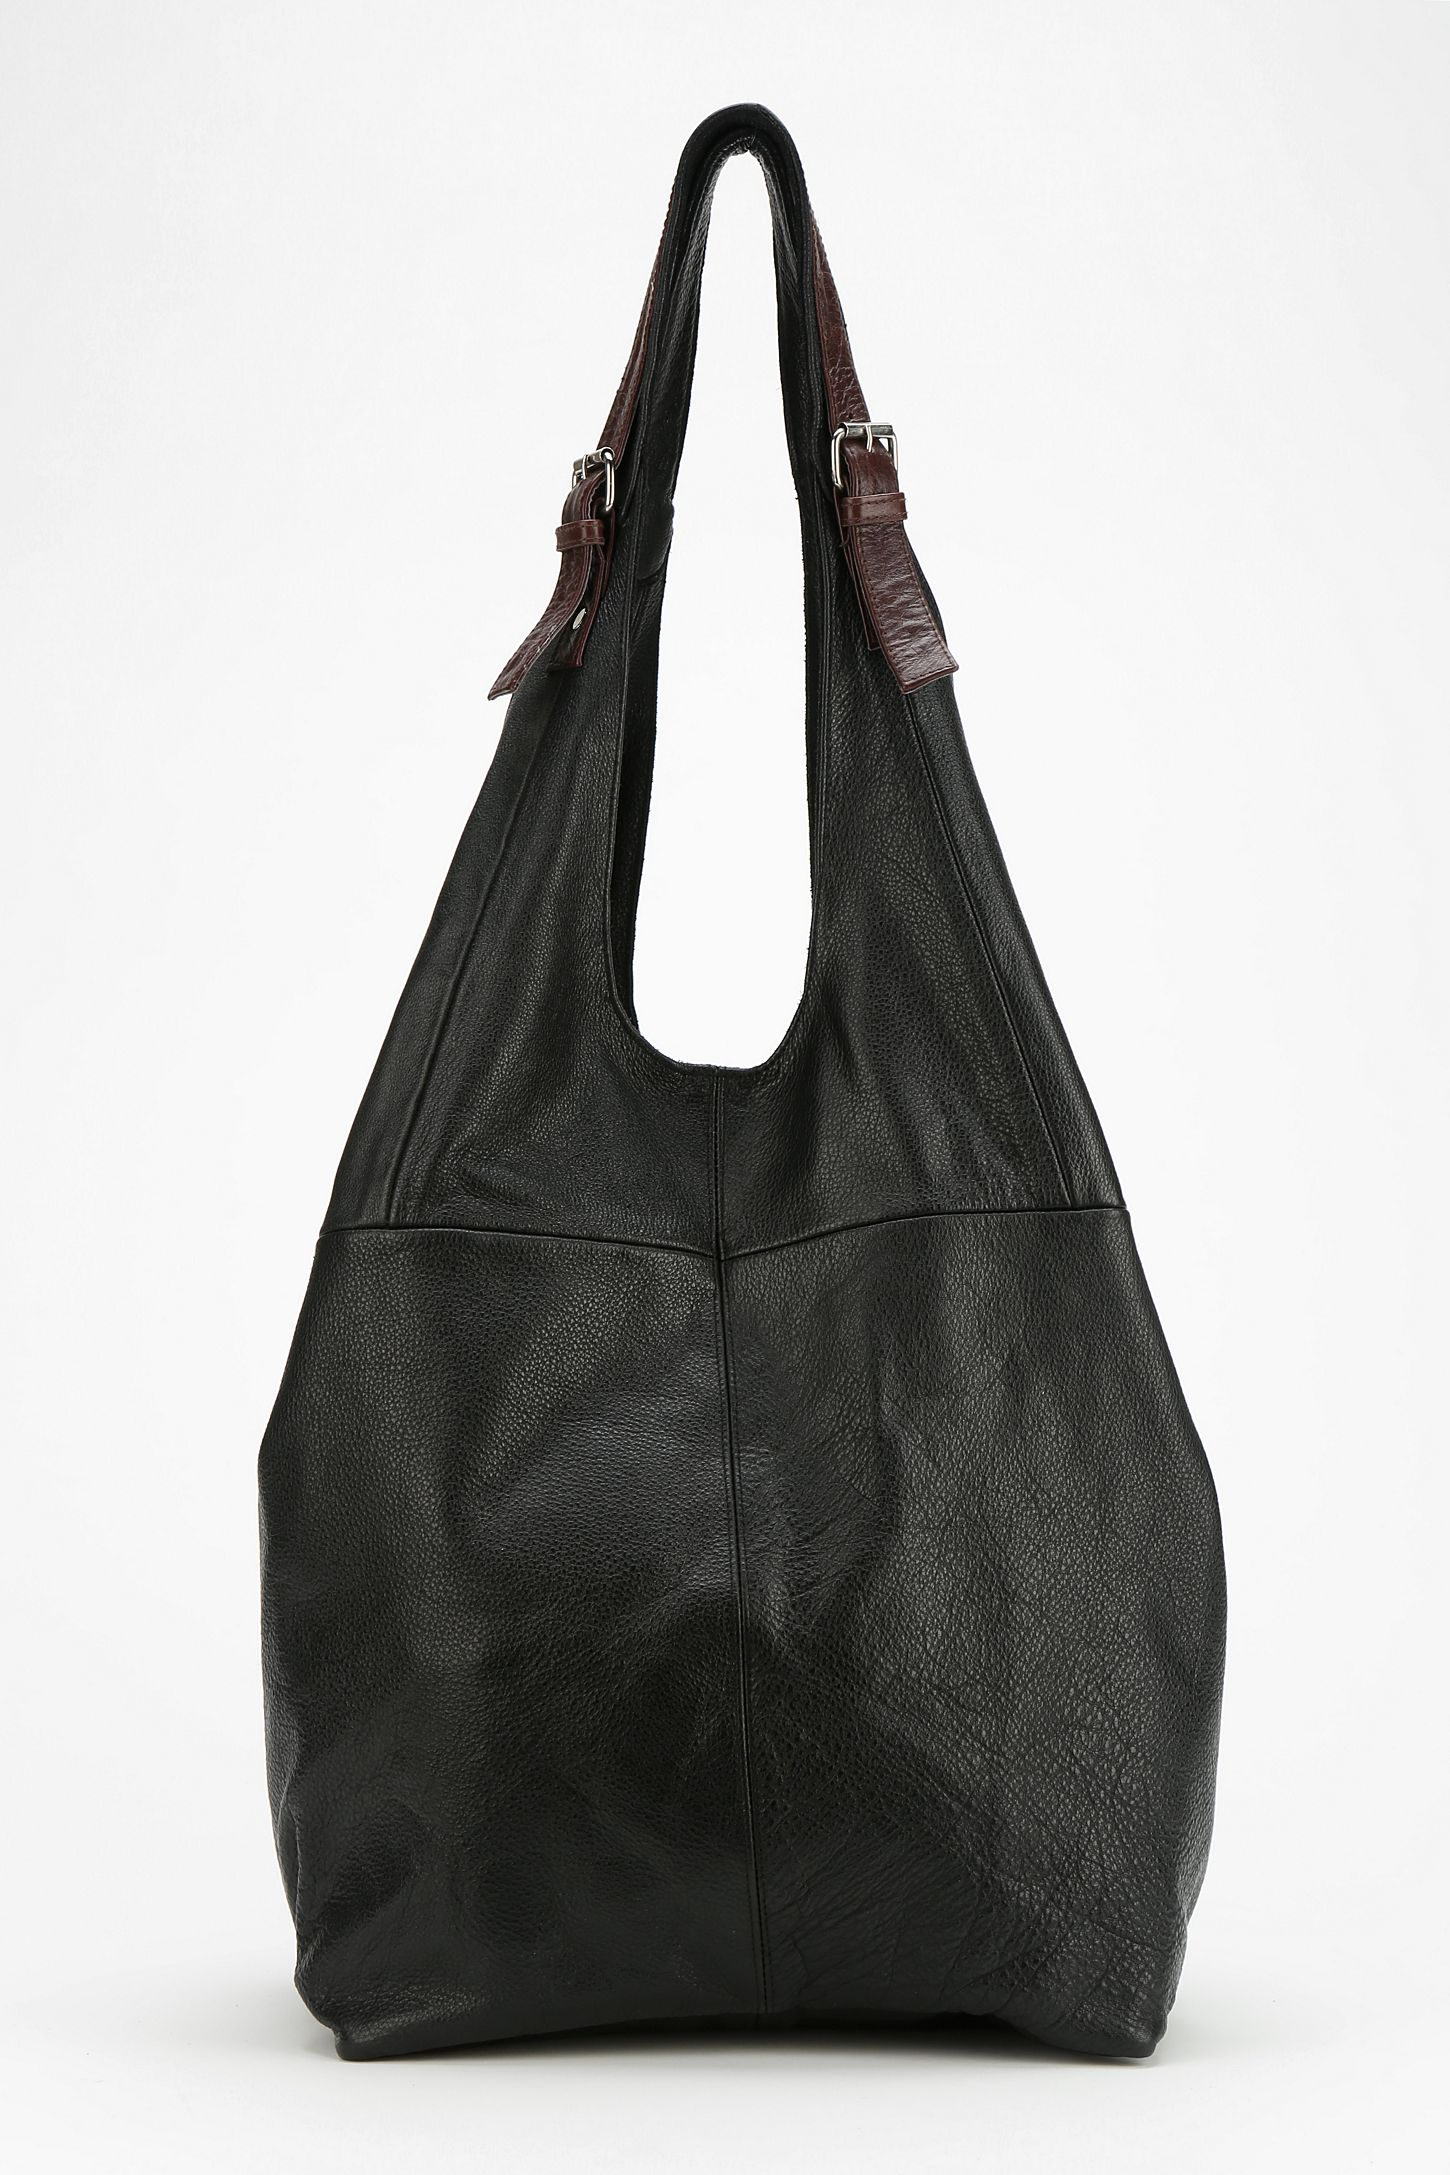 d6a91bdabc31 PeleCheCoco Naya Oversized Hobo Bag. Tap image to zoom. Hover to zoom.  Double Tap to Zoom